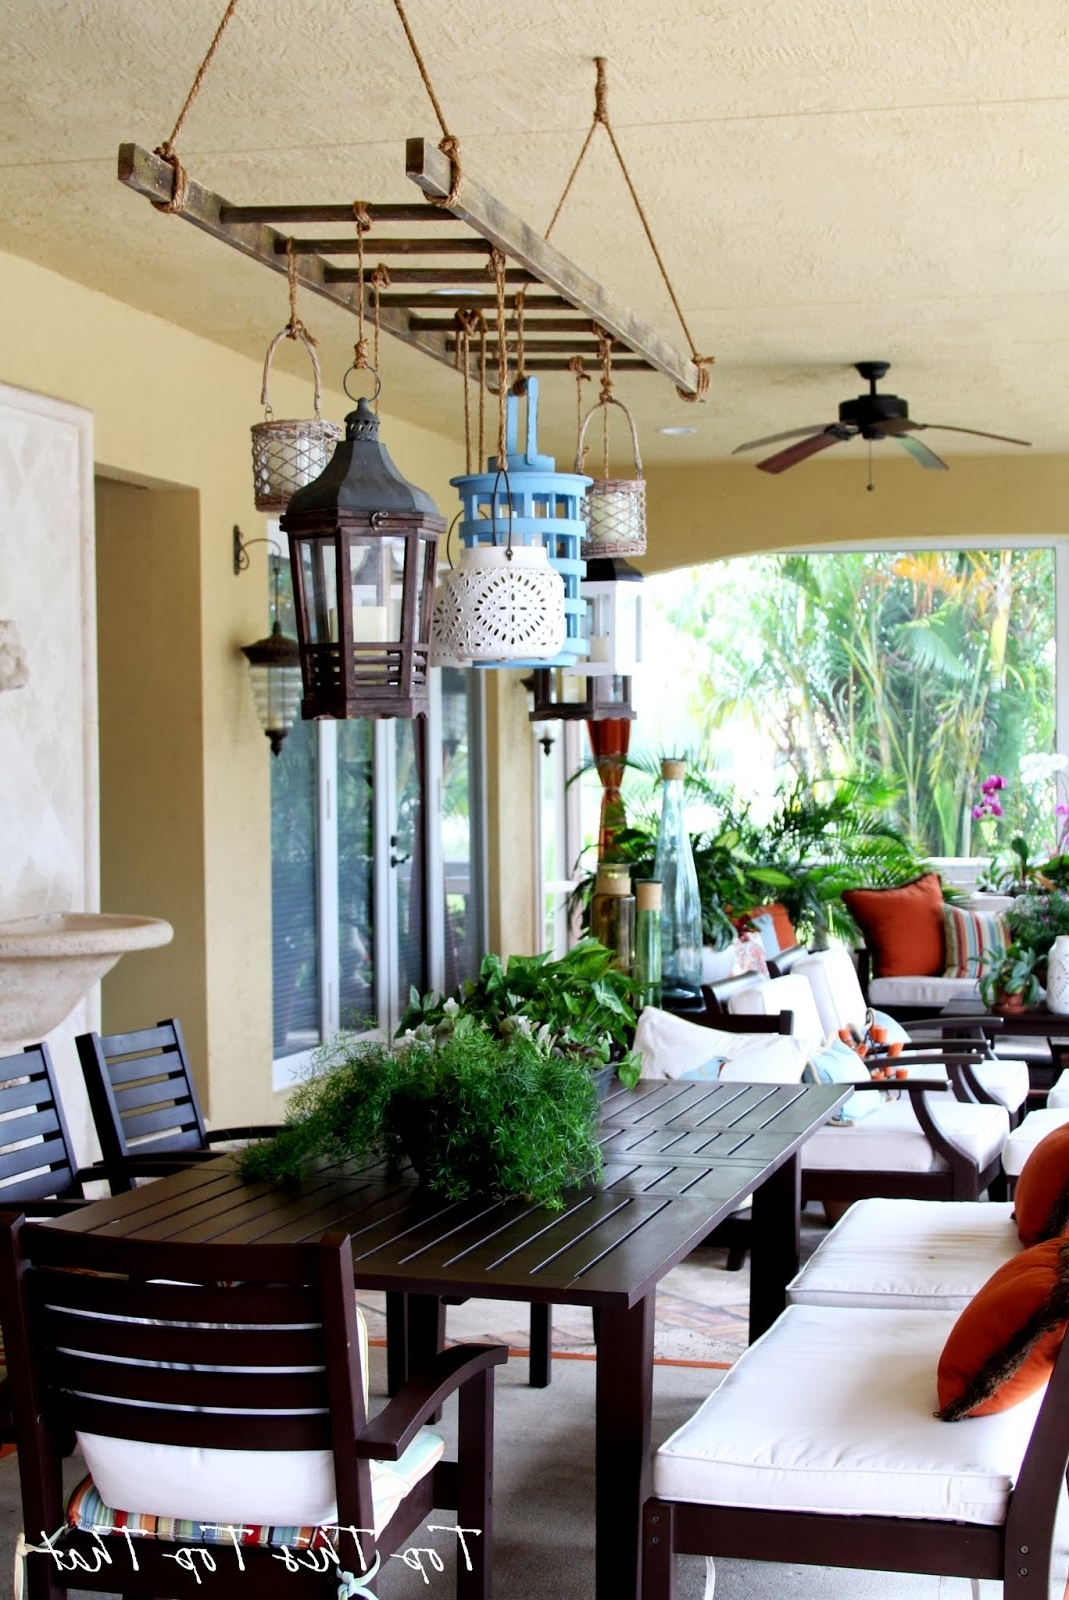 Outdoor Hanging Lanterns For Patio Decorate Ideas Simple At Lantern Within Widely Used Outdoor Hanging Lights For Patio (View 11 of 20)